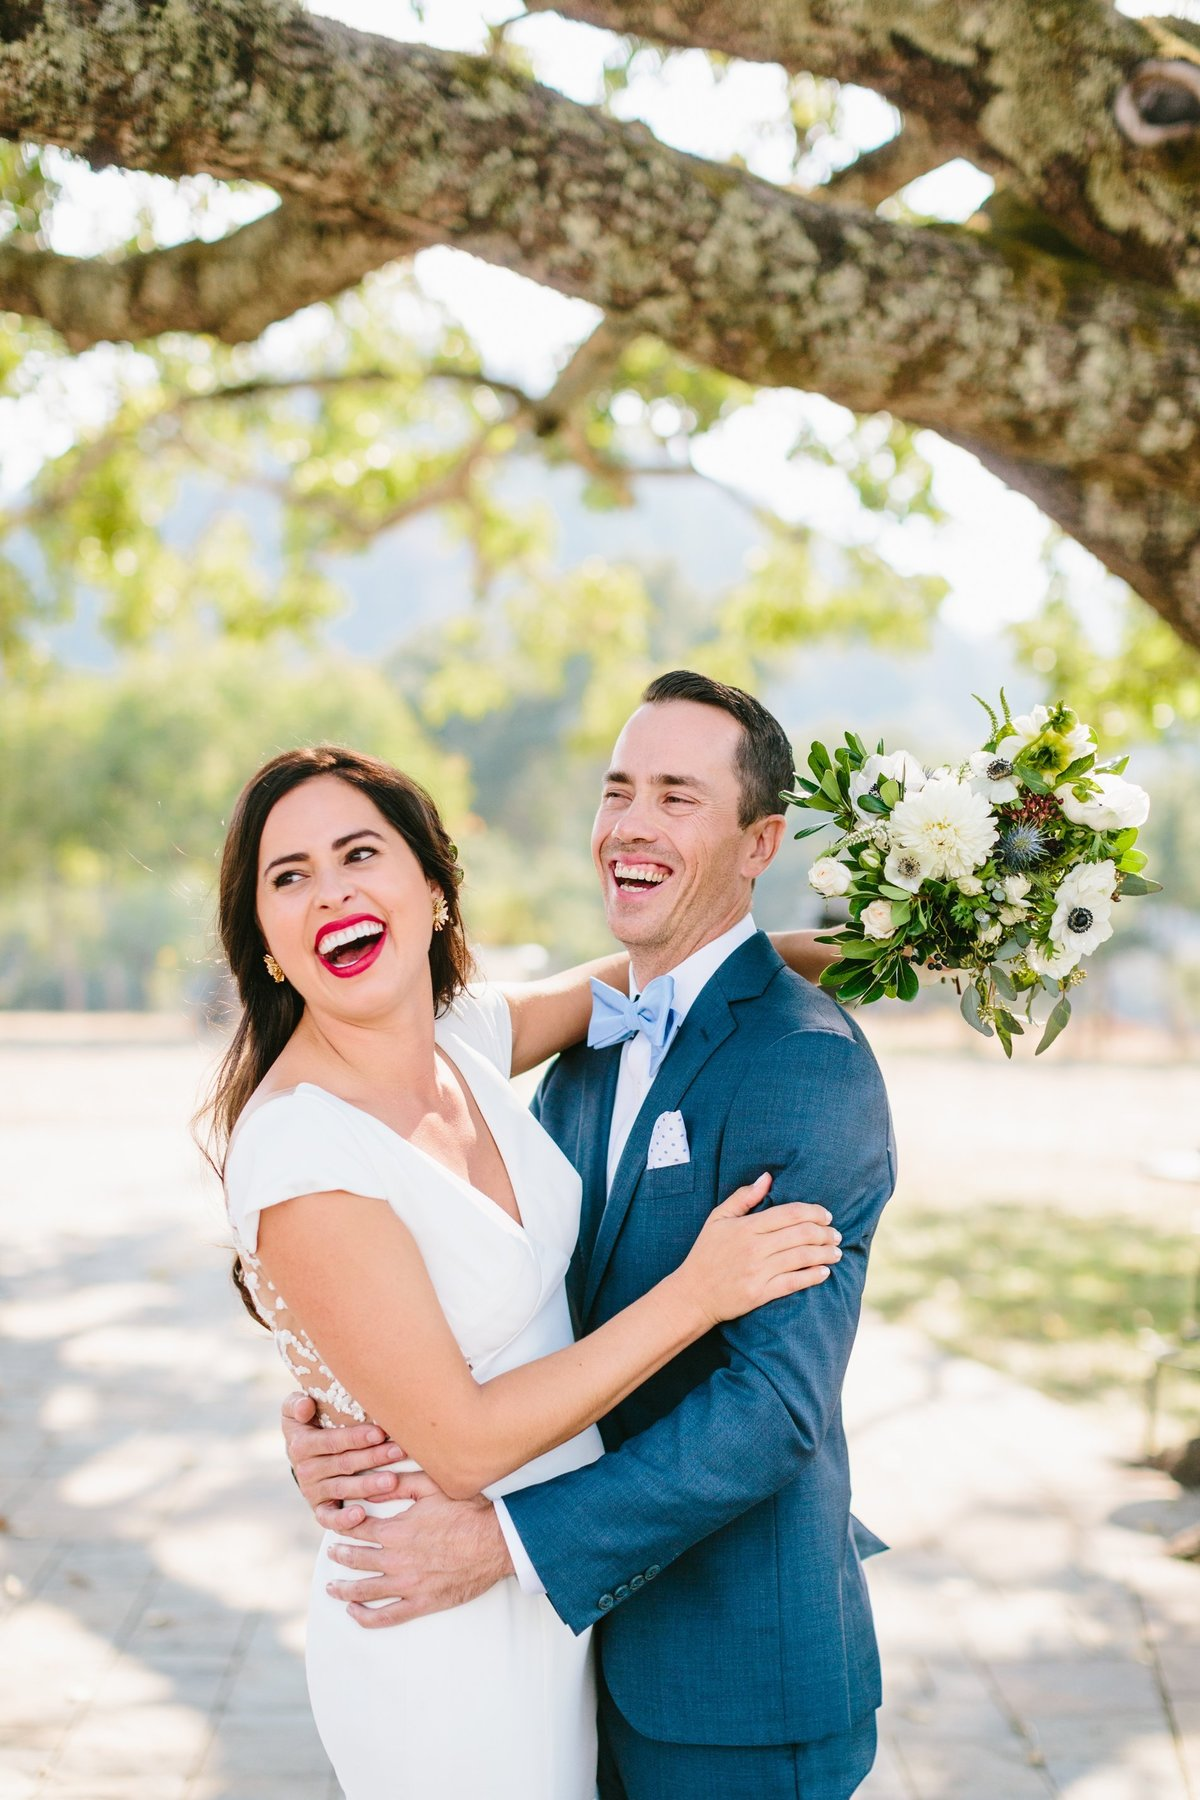 Best California Wedding Photographer-Jodee Debes Photography-388